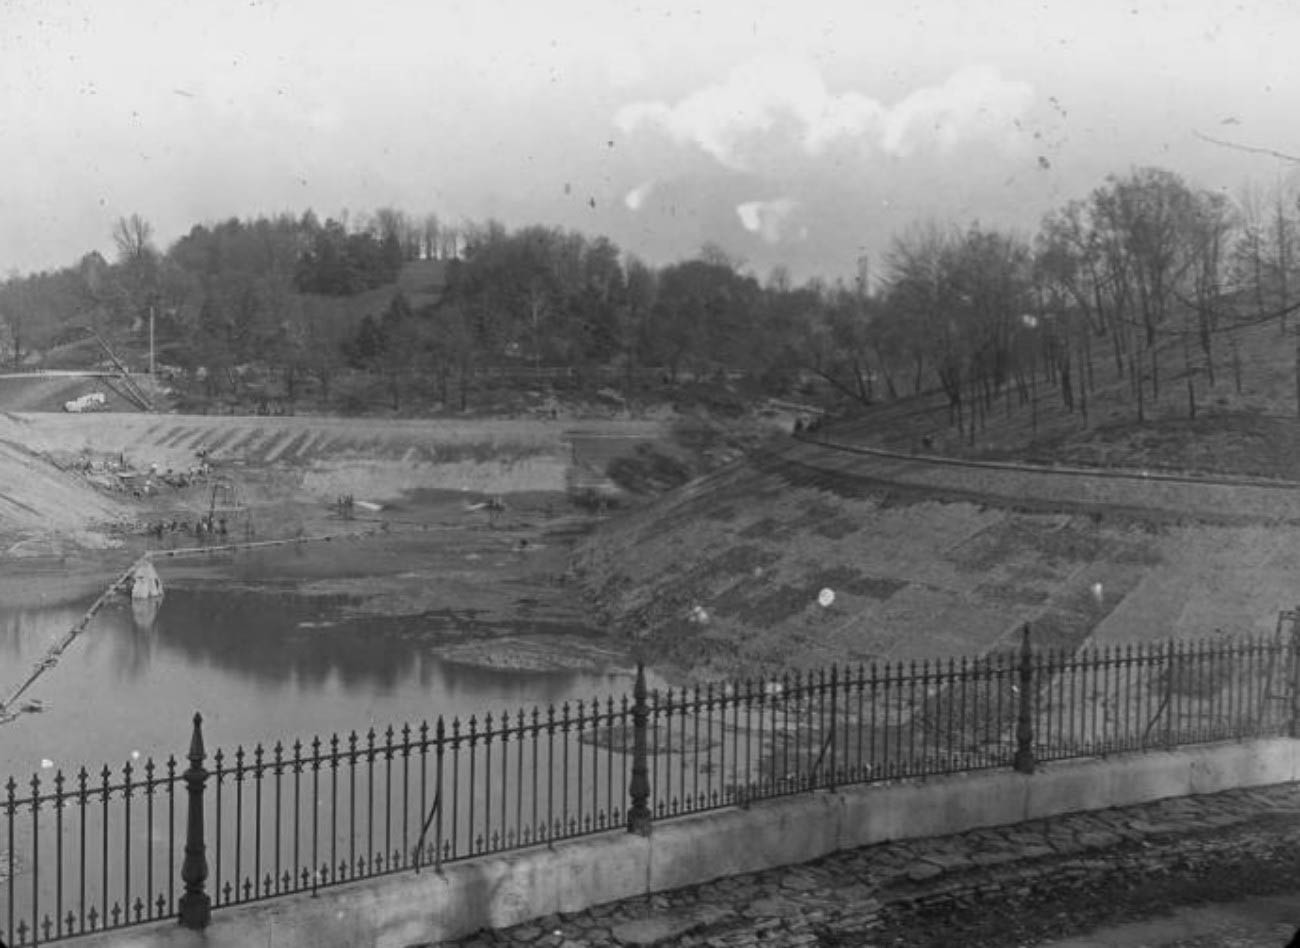 When the reservoir was drained for routine maintenance, all kinds of surprises were found in the reservoir basin, from wrecked cars to dead bodies. / Image courtesy of The Cincinnati Public Library Memory Project // Published: 4.12.19